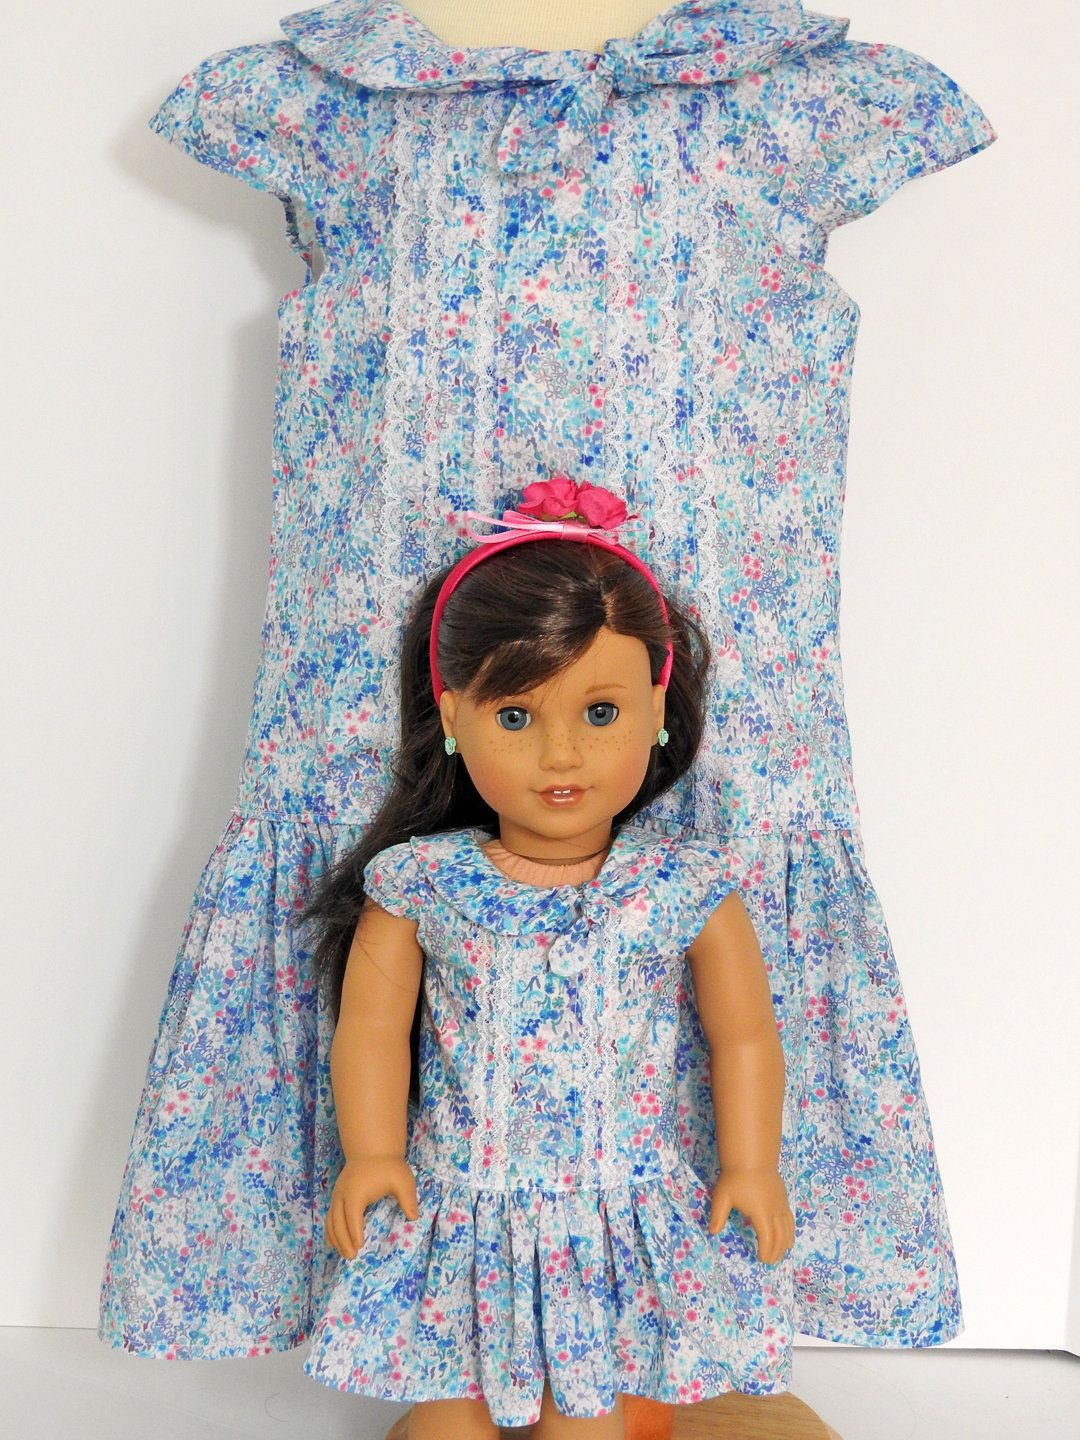 Doll and Me Matching Girl and Doll Dresses | Pinterest